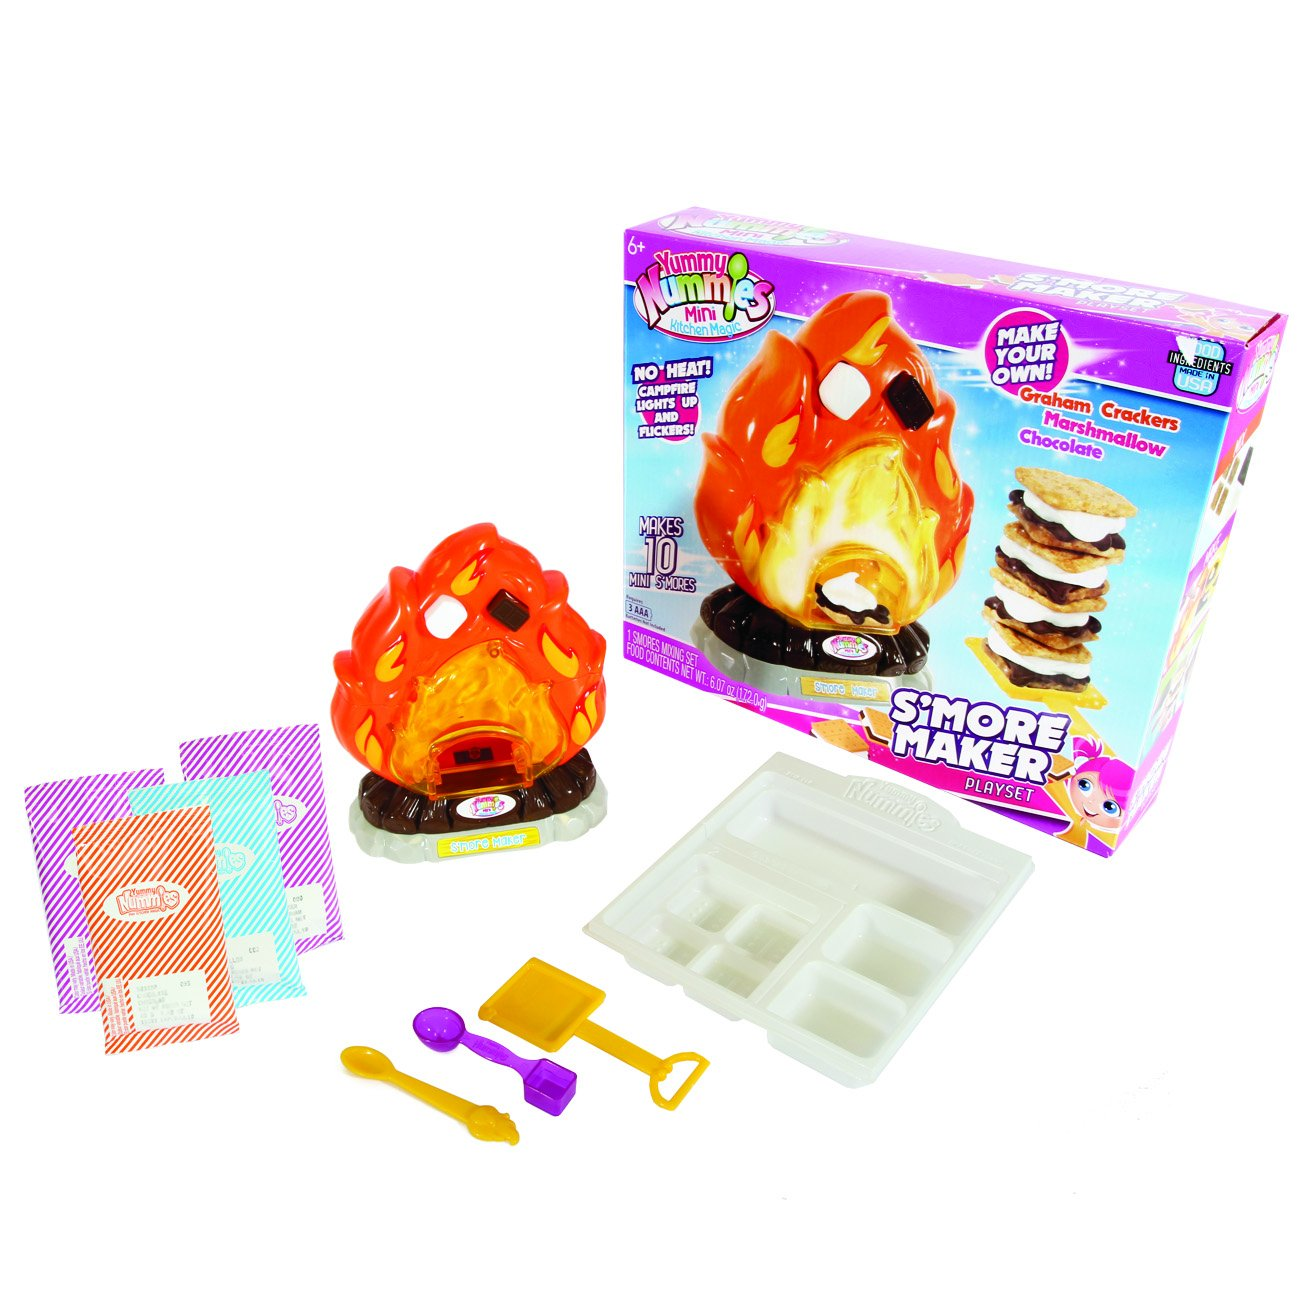 Yummy Nummy Mini Kitchen Playset S'Mores Maker by Yummy Nummy